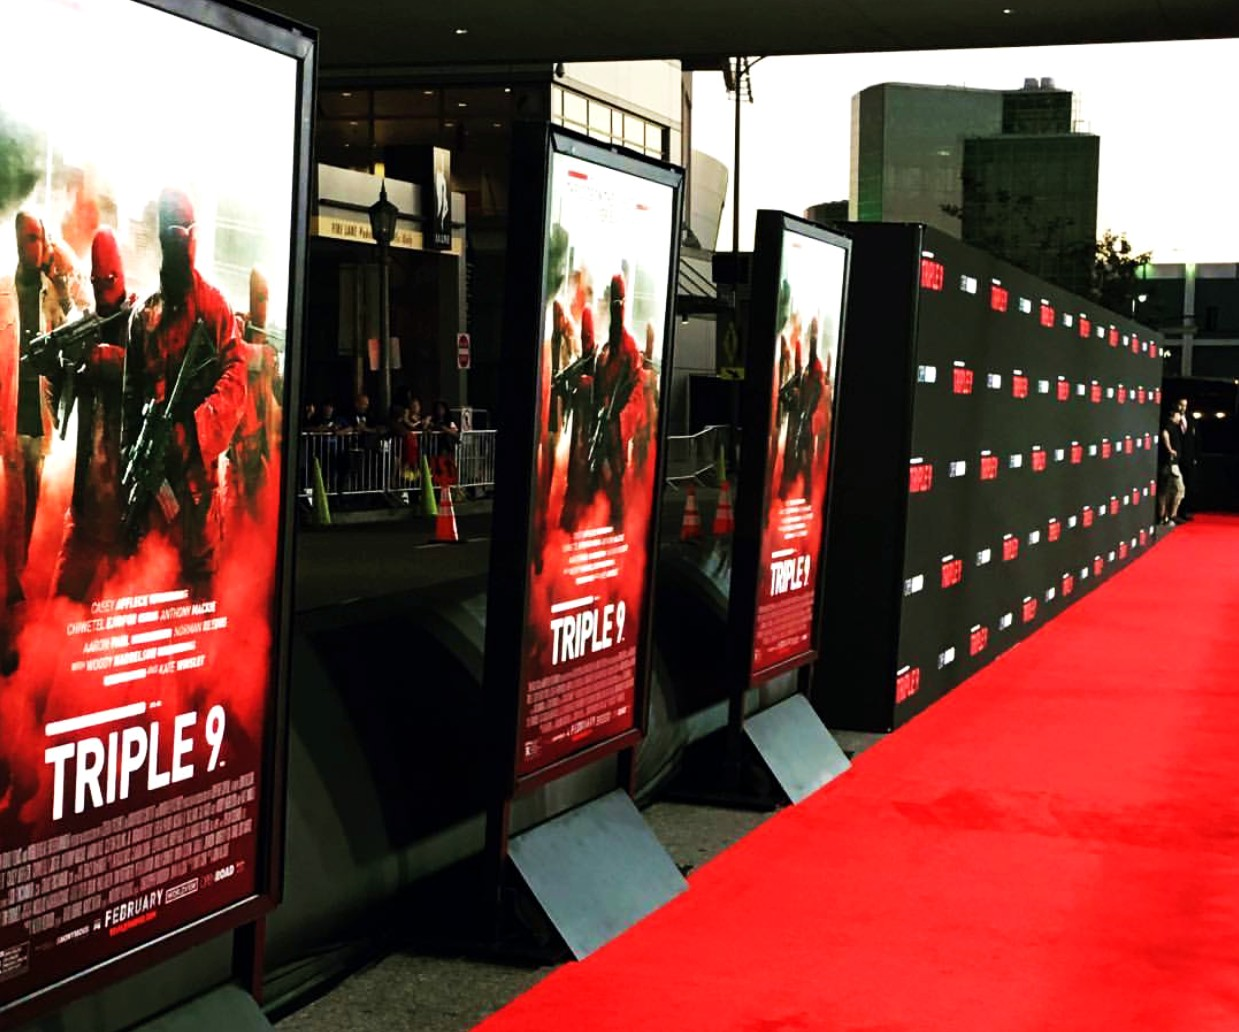 Triple 9, movie premiere, red carpet